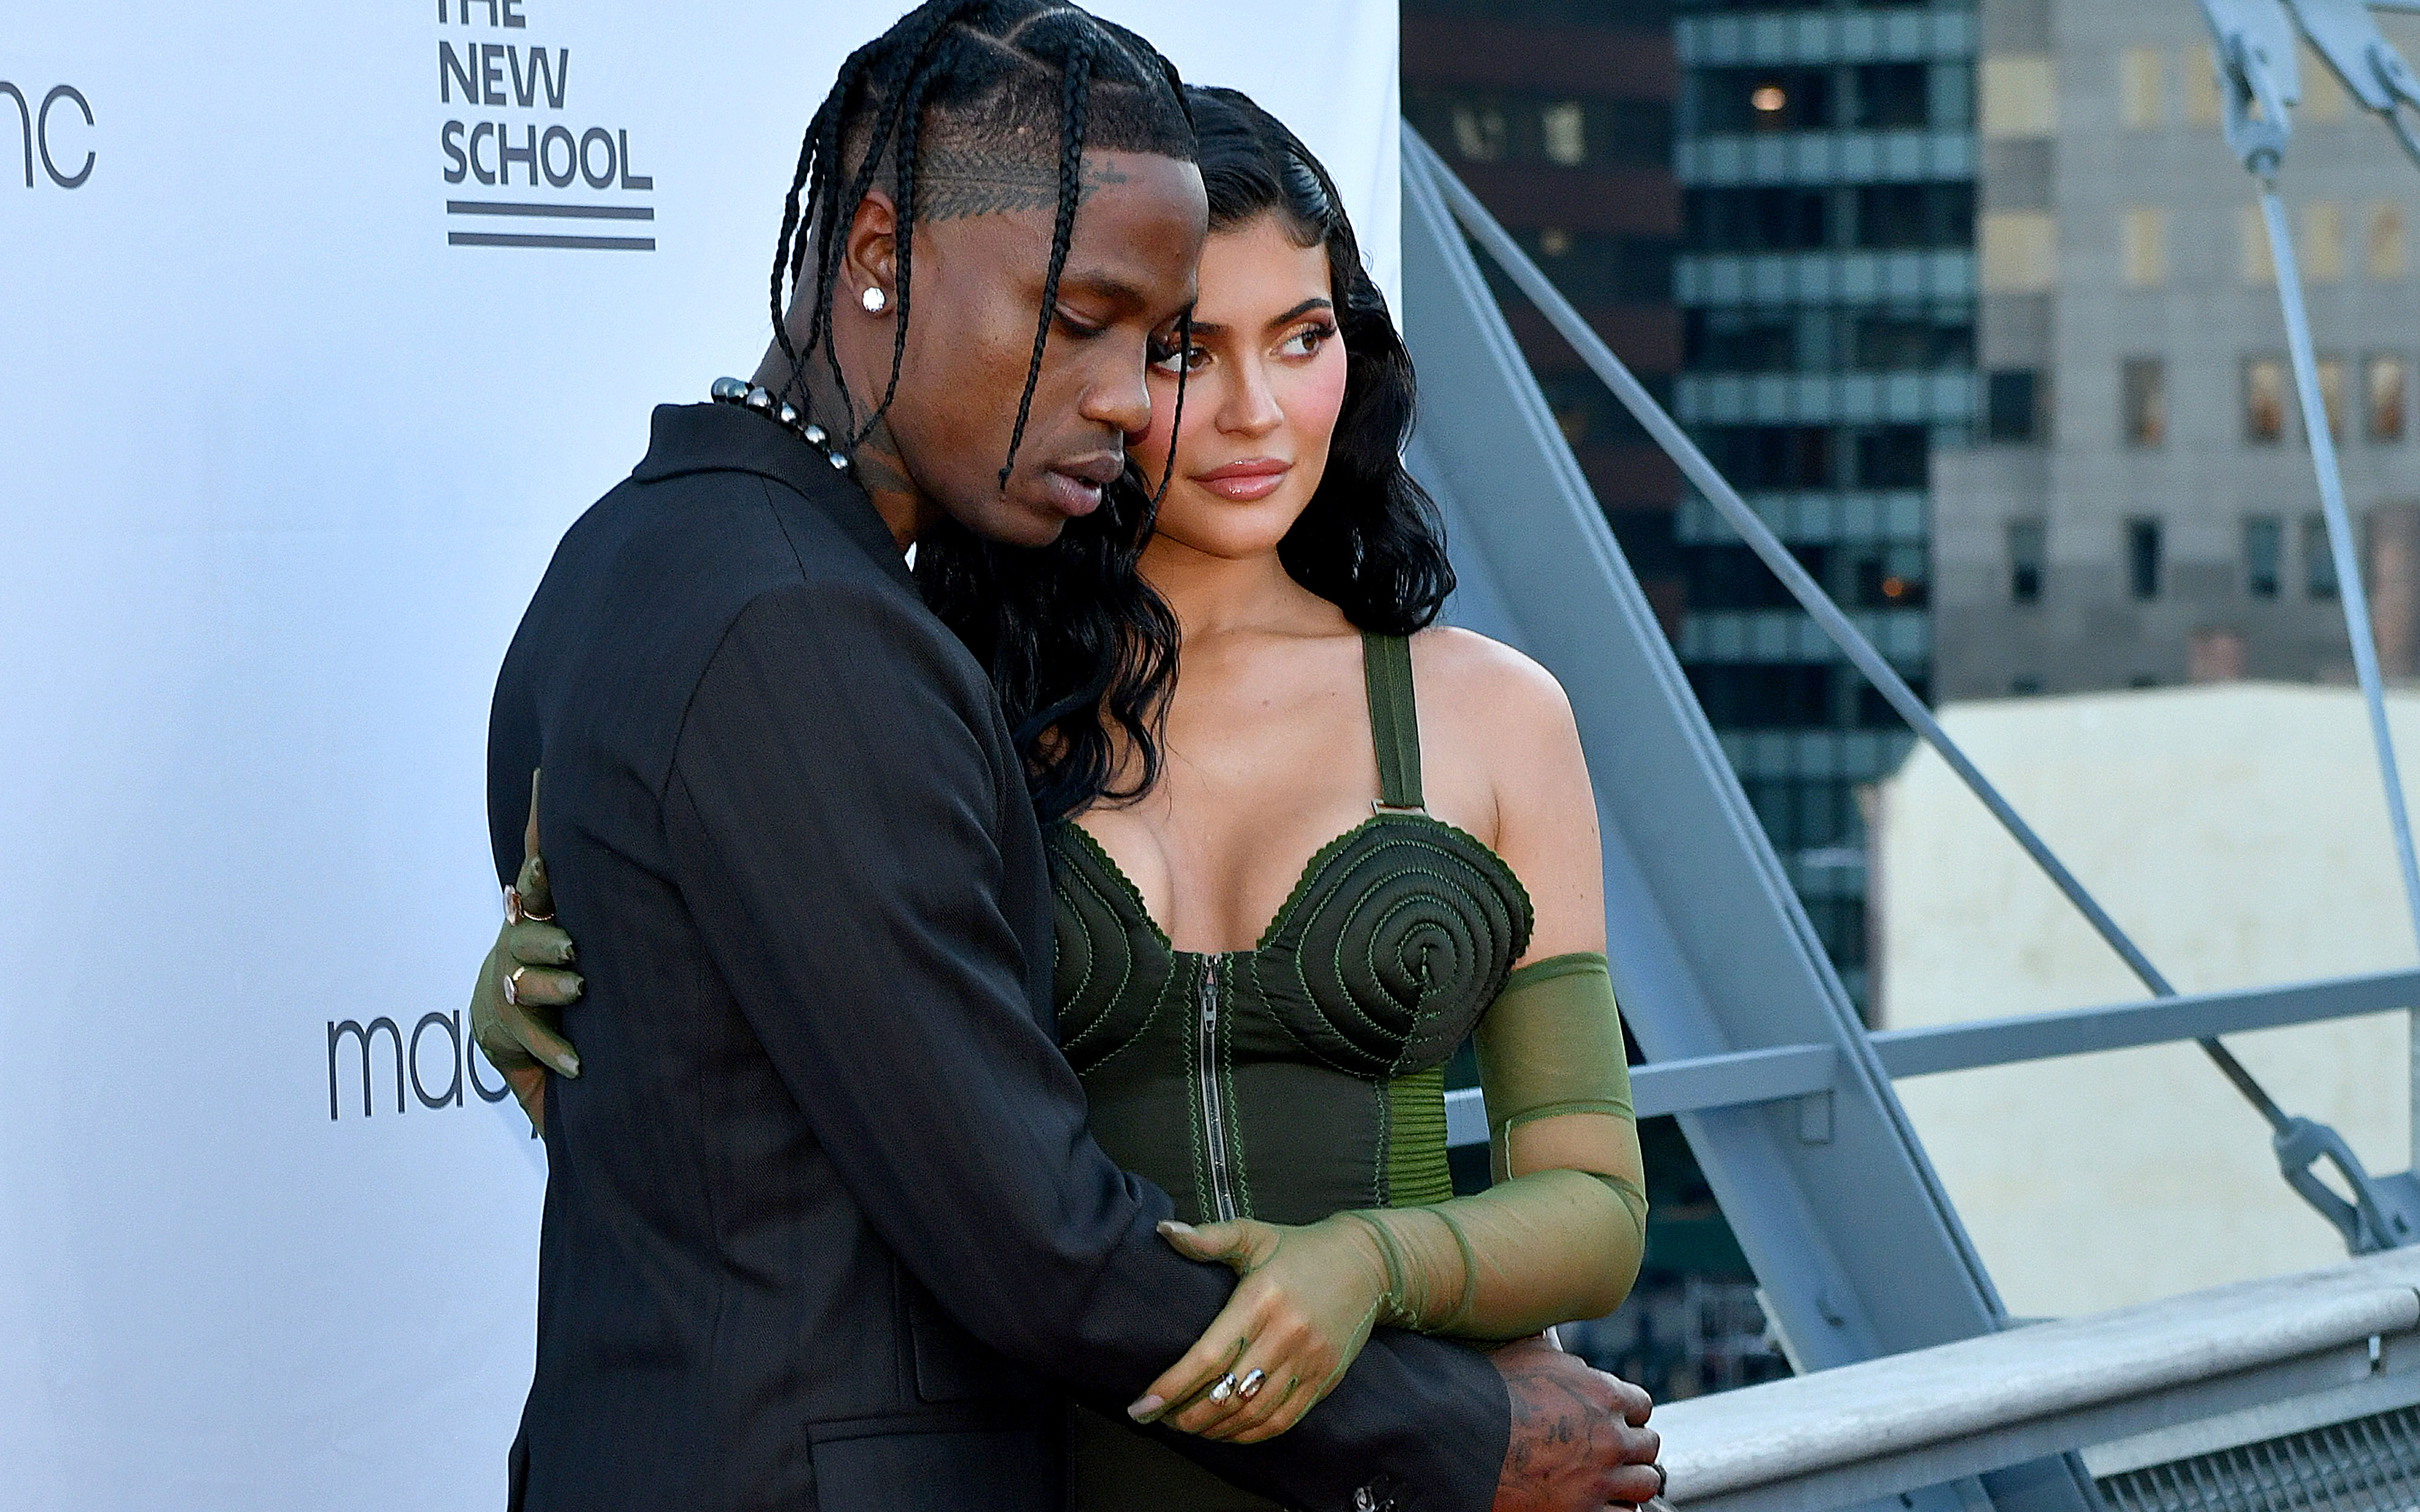 The Internet Thinks Kylie Jenner Is Pregnant Again